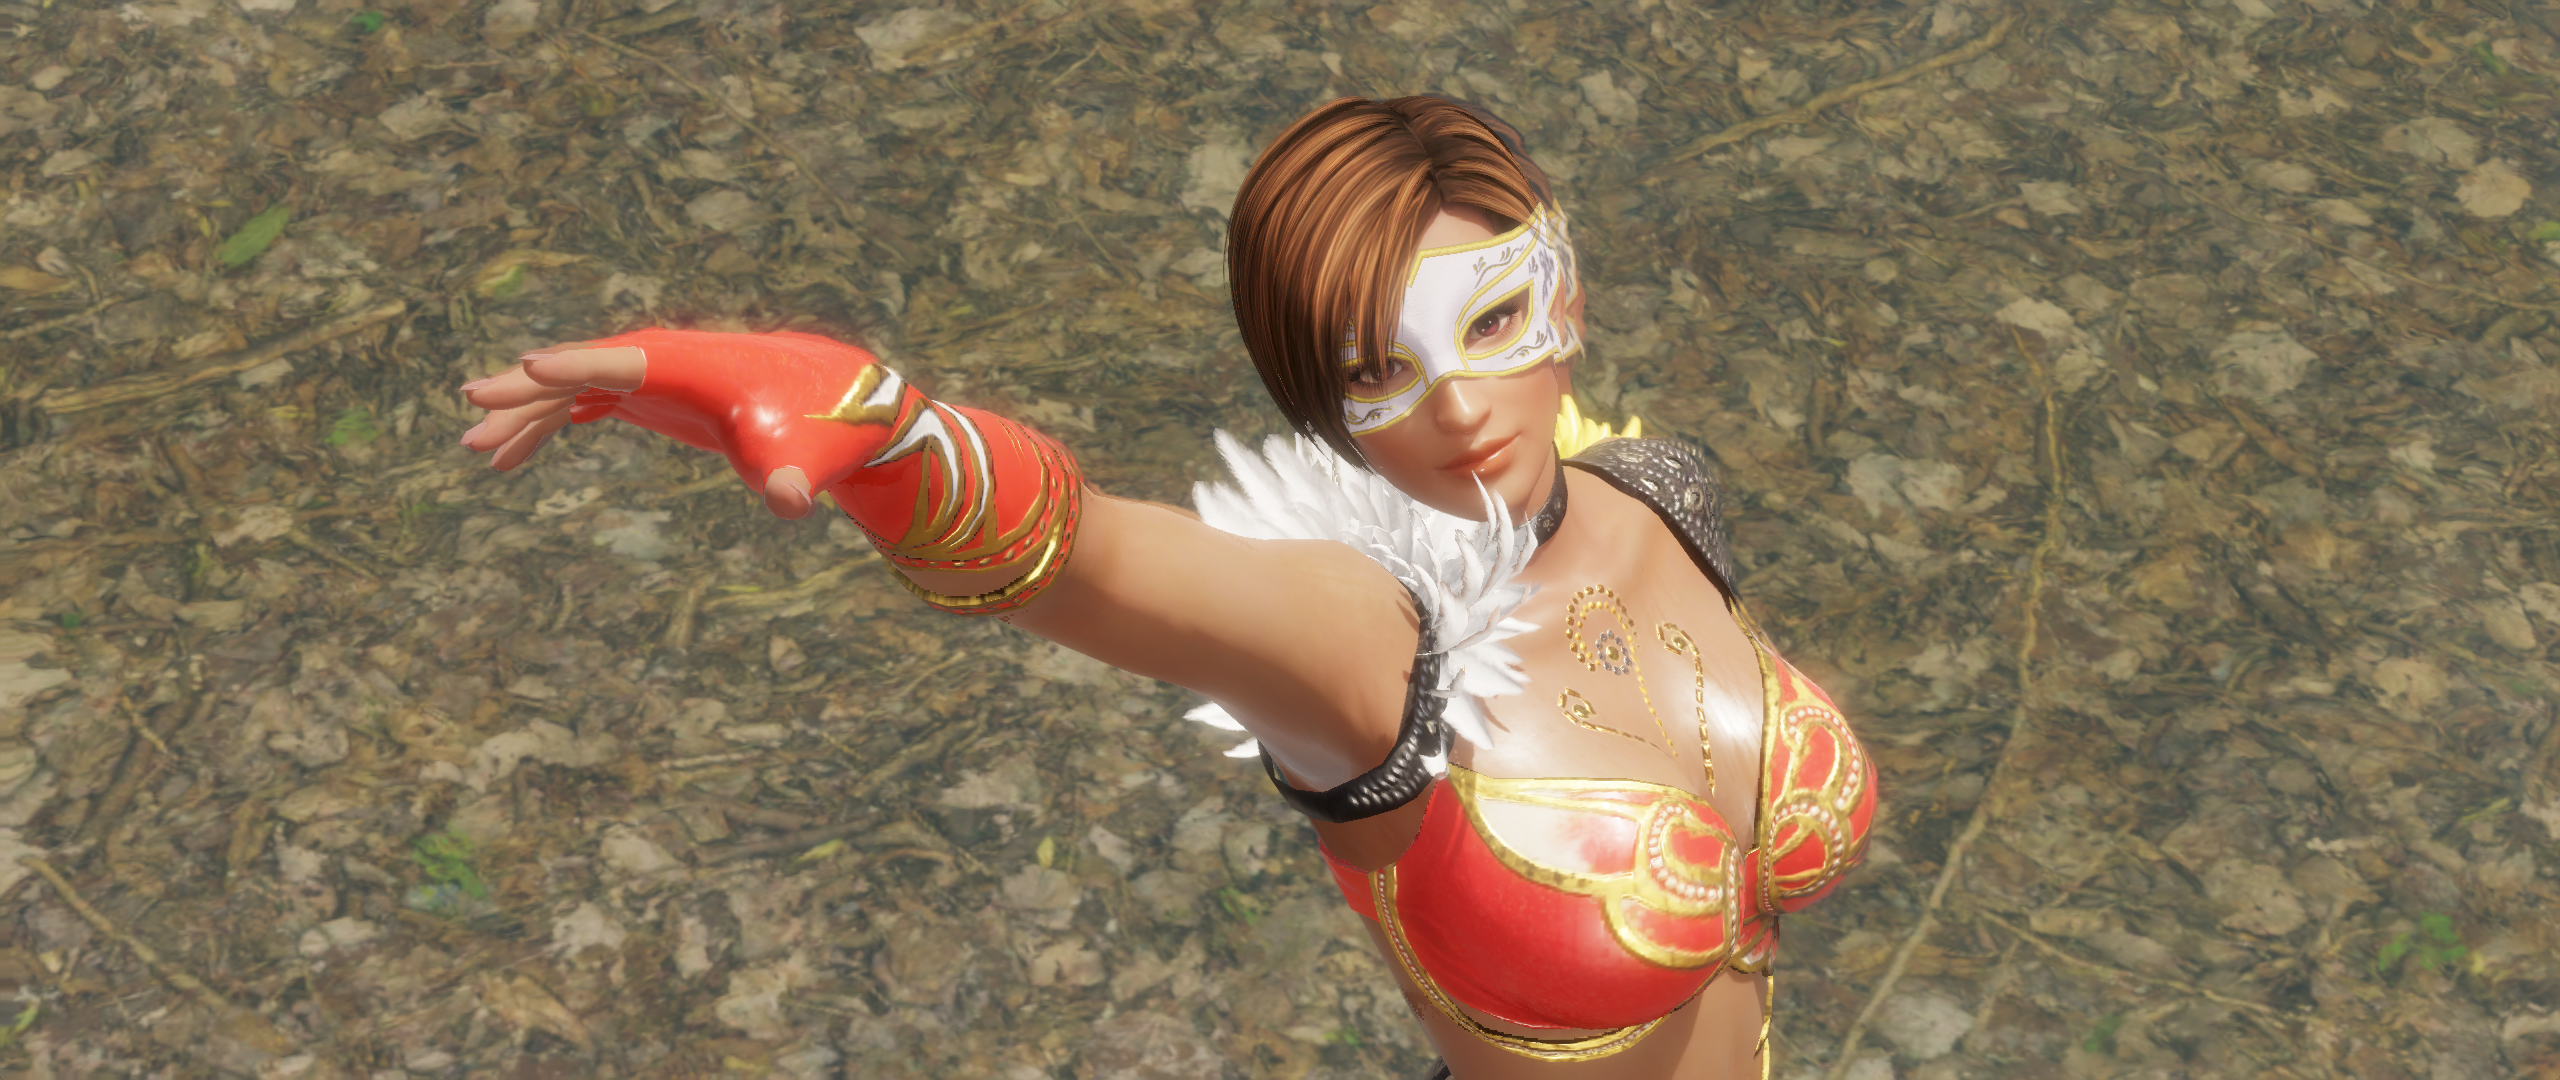 DOA6 Screenshot 2020.02.21 - 19.03.24.08.png - Dead or Alive 6